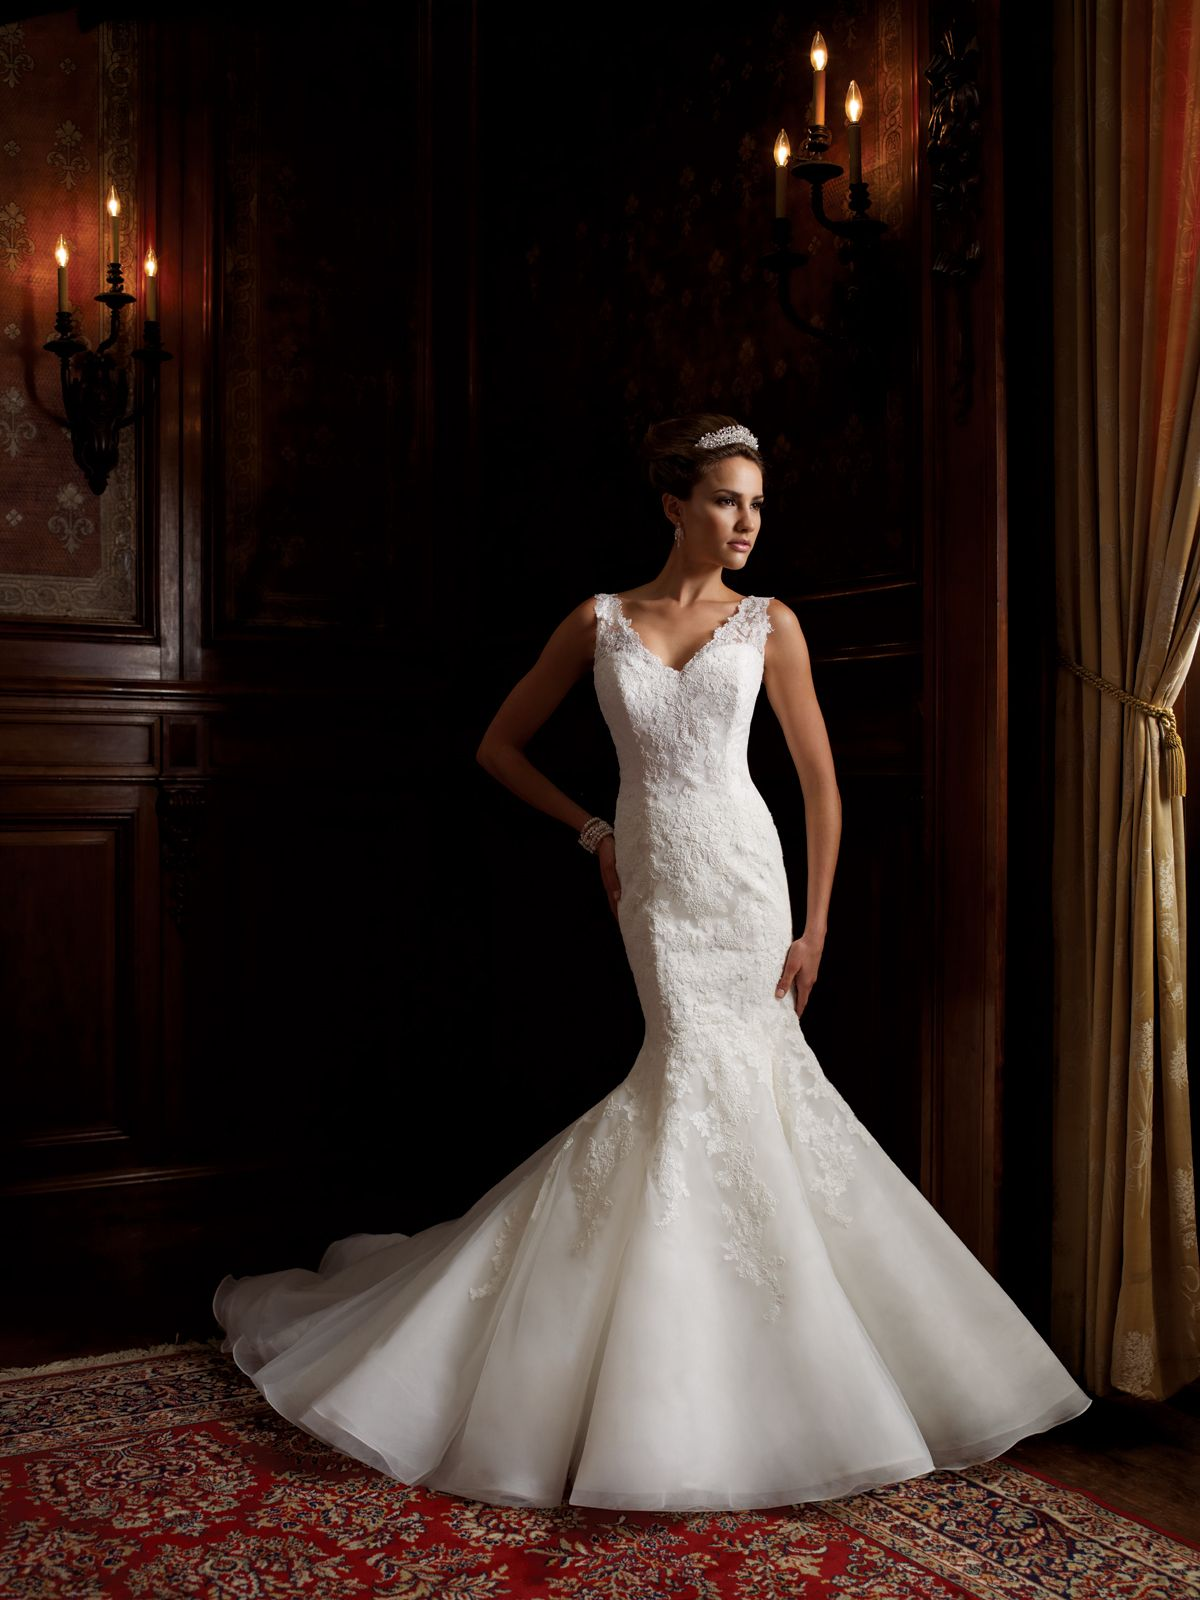 Simple lace dress styles  Wedding dresses and bridals gowns by David Tutera  Lace sleeves